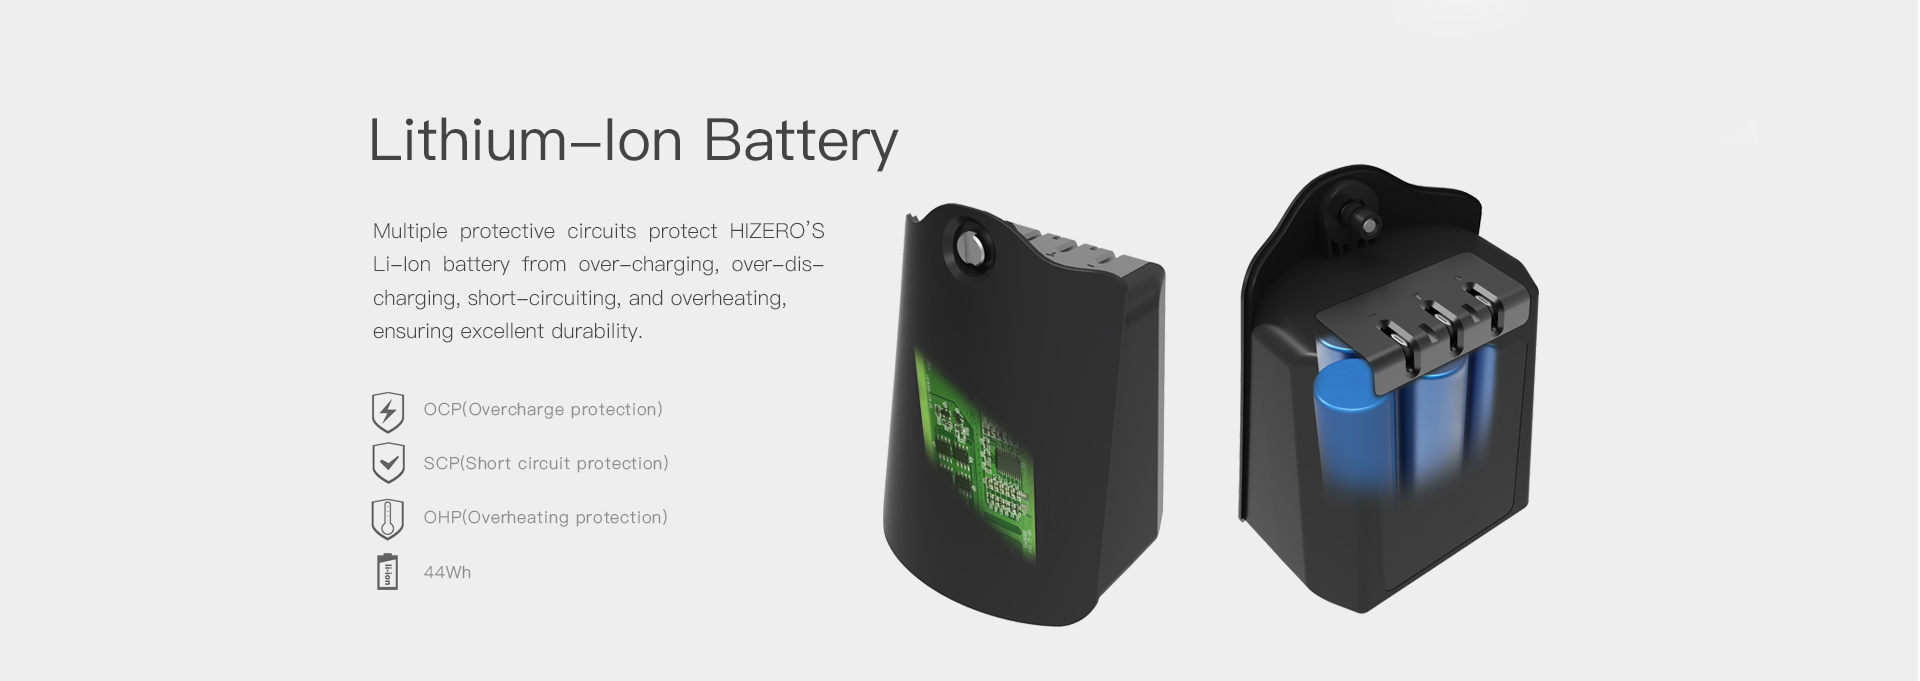 hizero-ion-battery-product-040.jpg